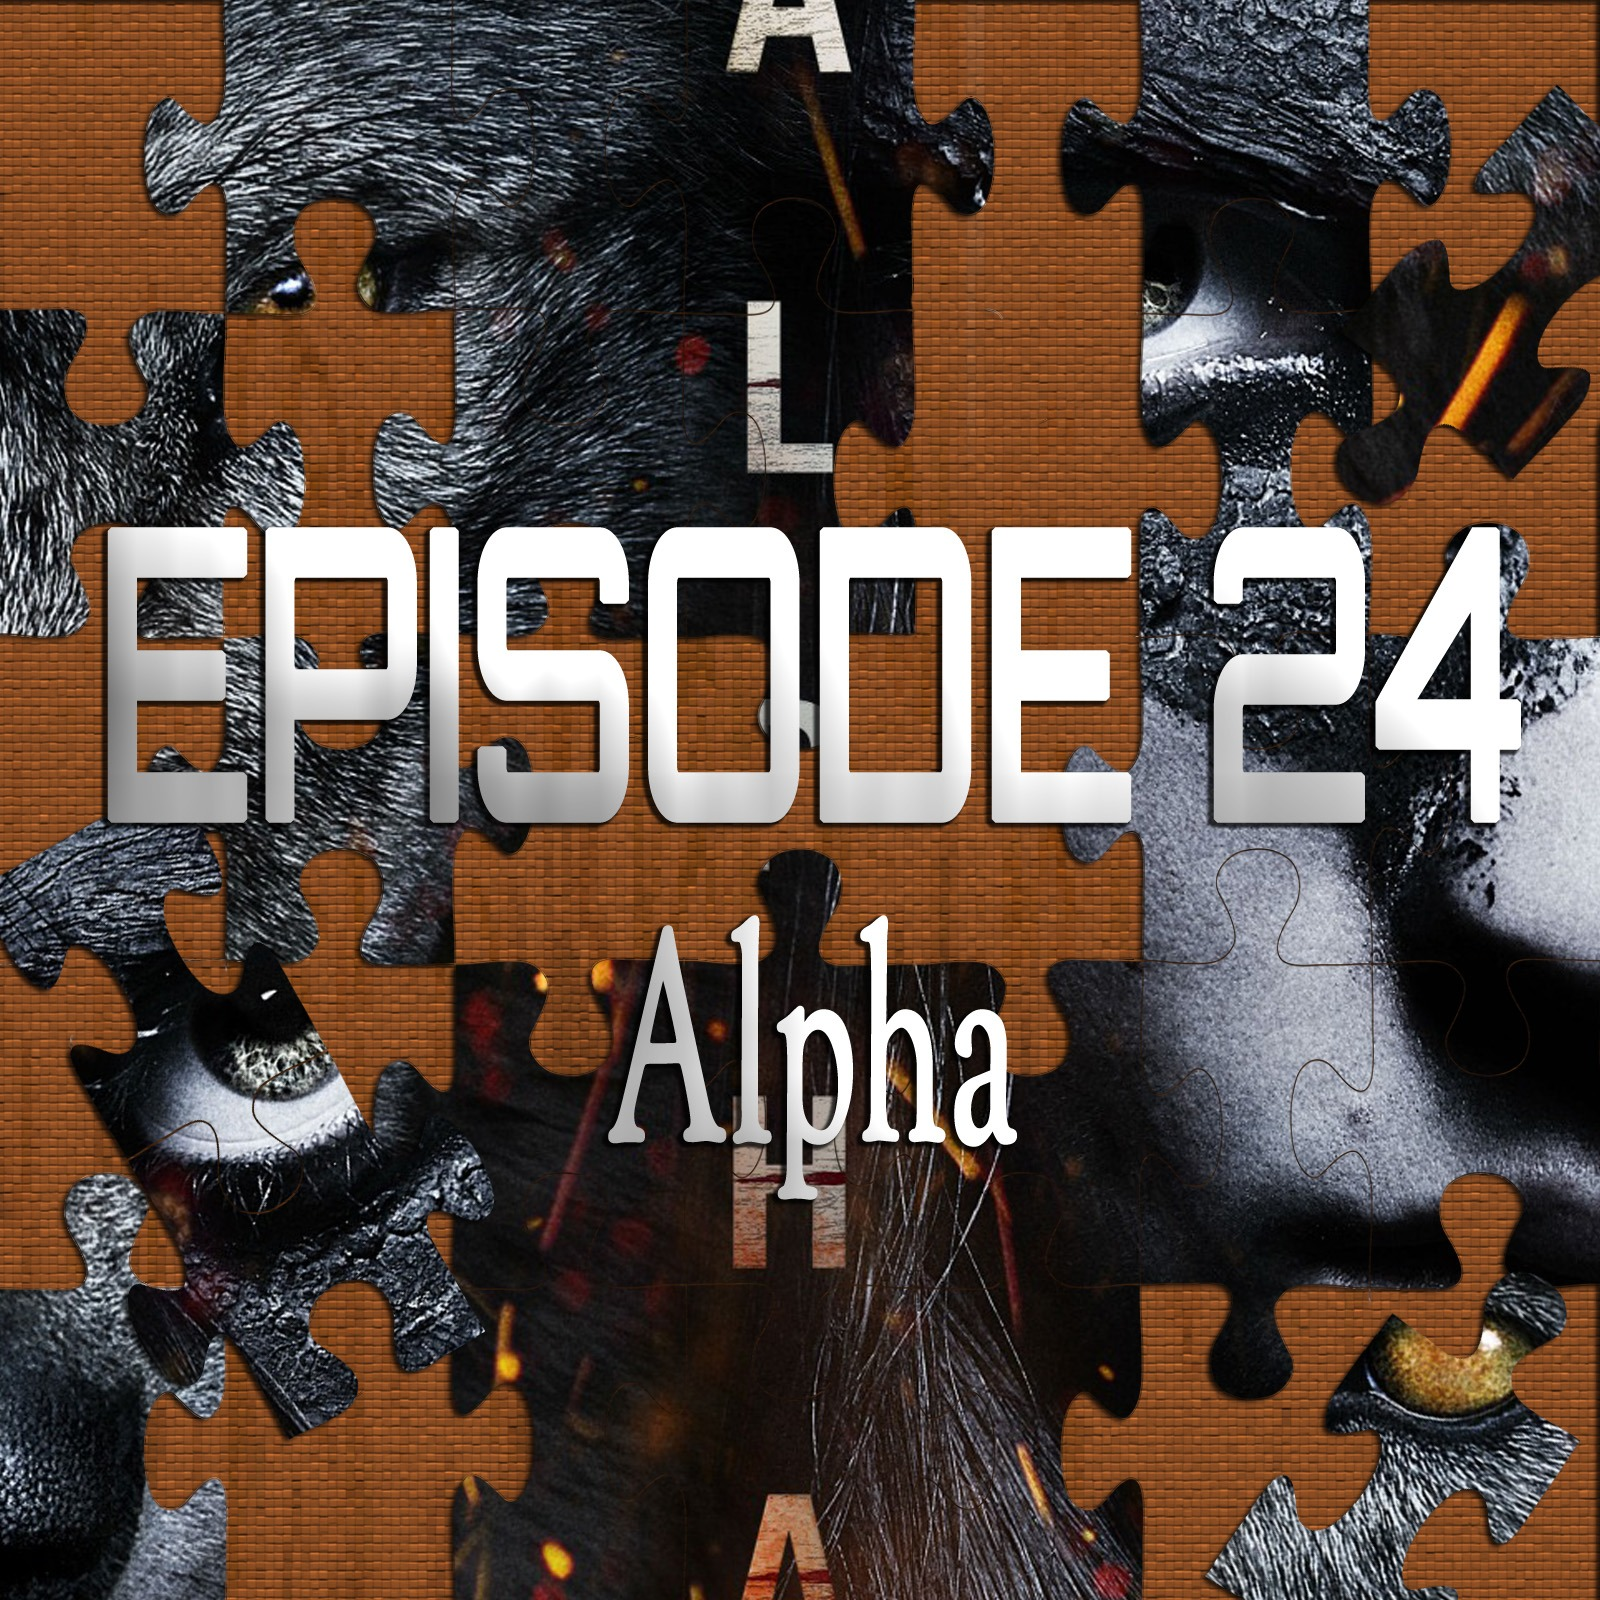 Alpha (Featuring Chad Clinton Freeman)